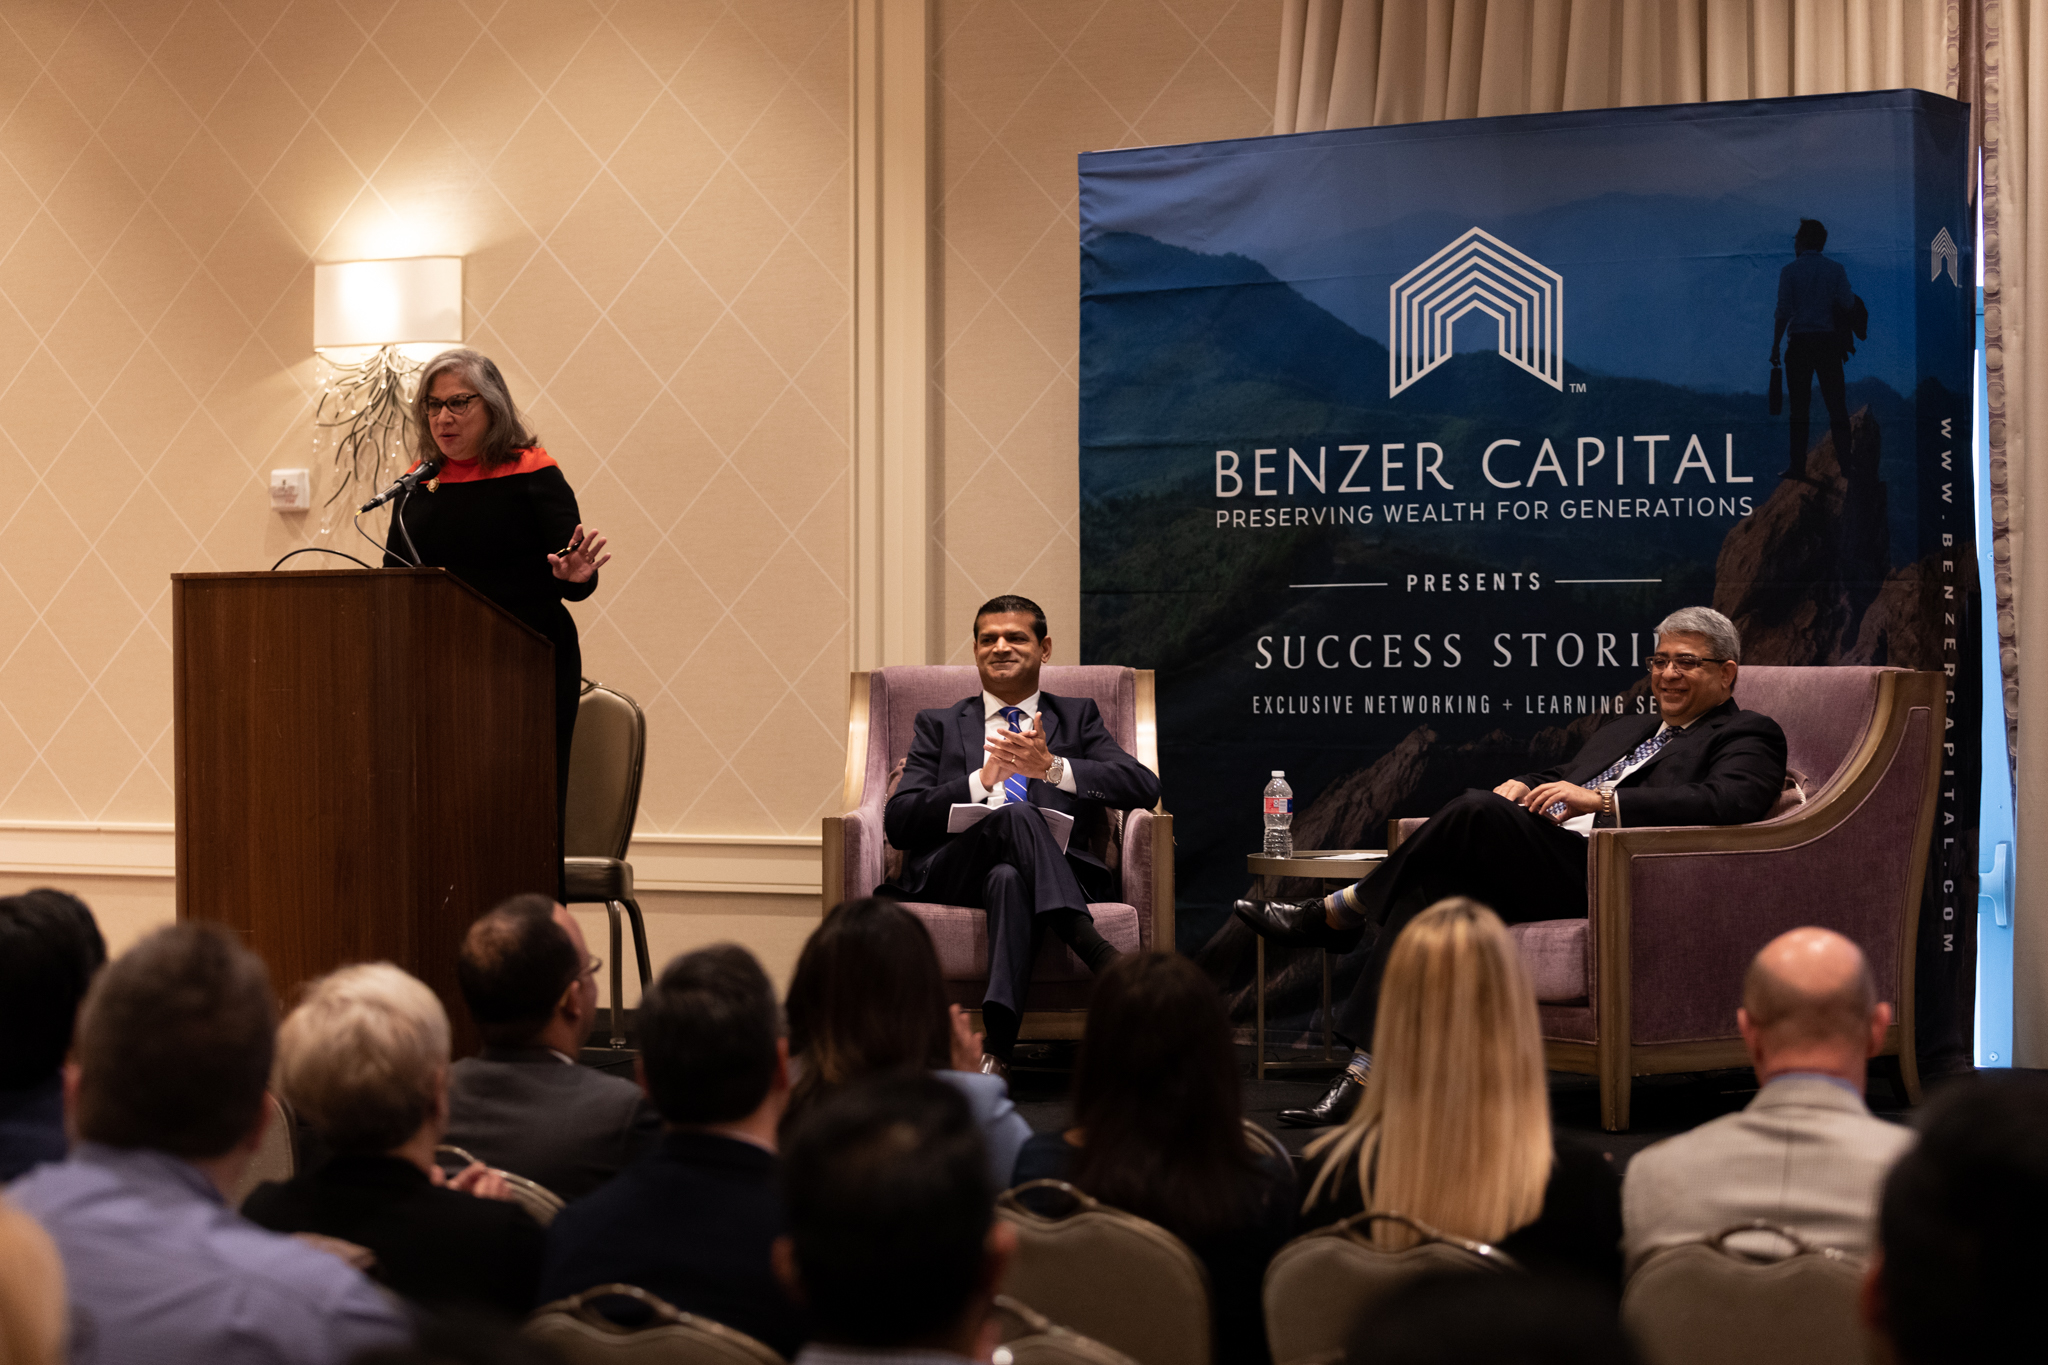 Benzer Capital_Briar Club event_web ready image-73.jpg